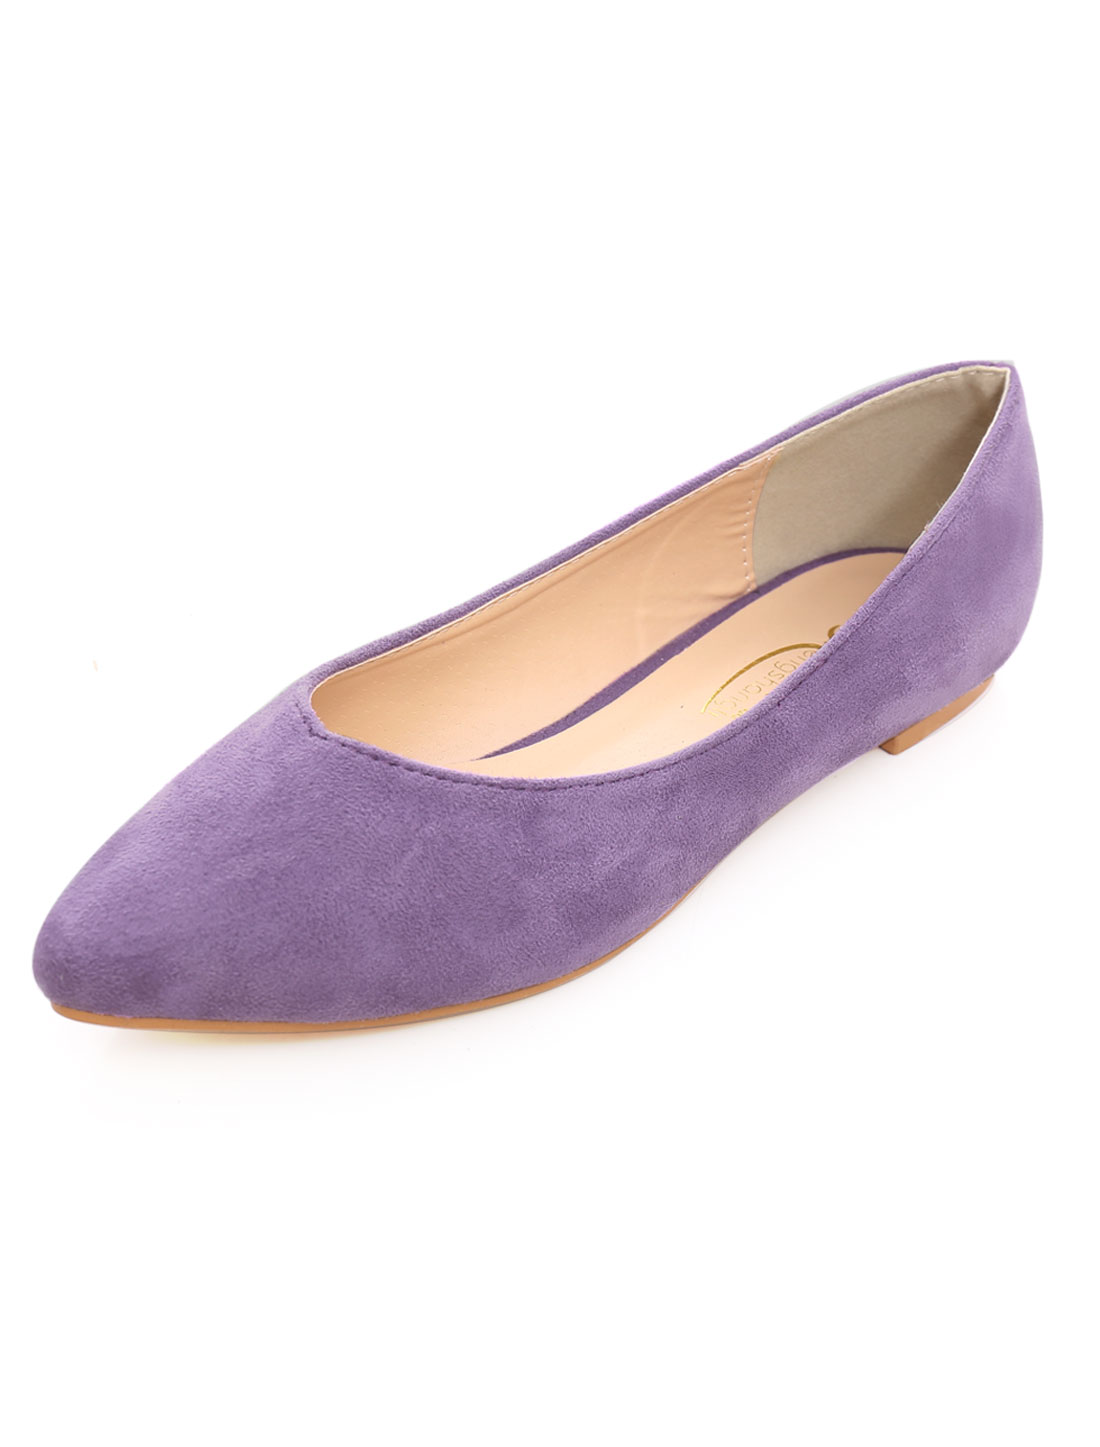 Woman Faux Suede V-Cut Vamp Casual Pointed Slip On Flat Purple US 8.5